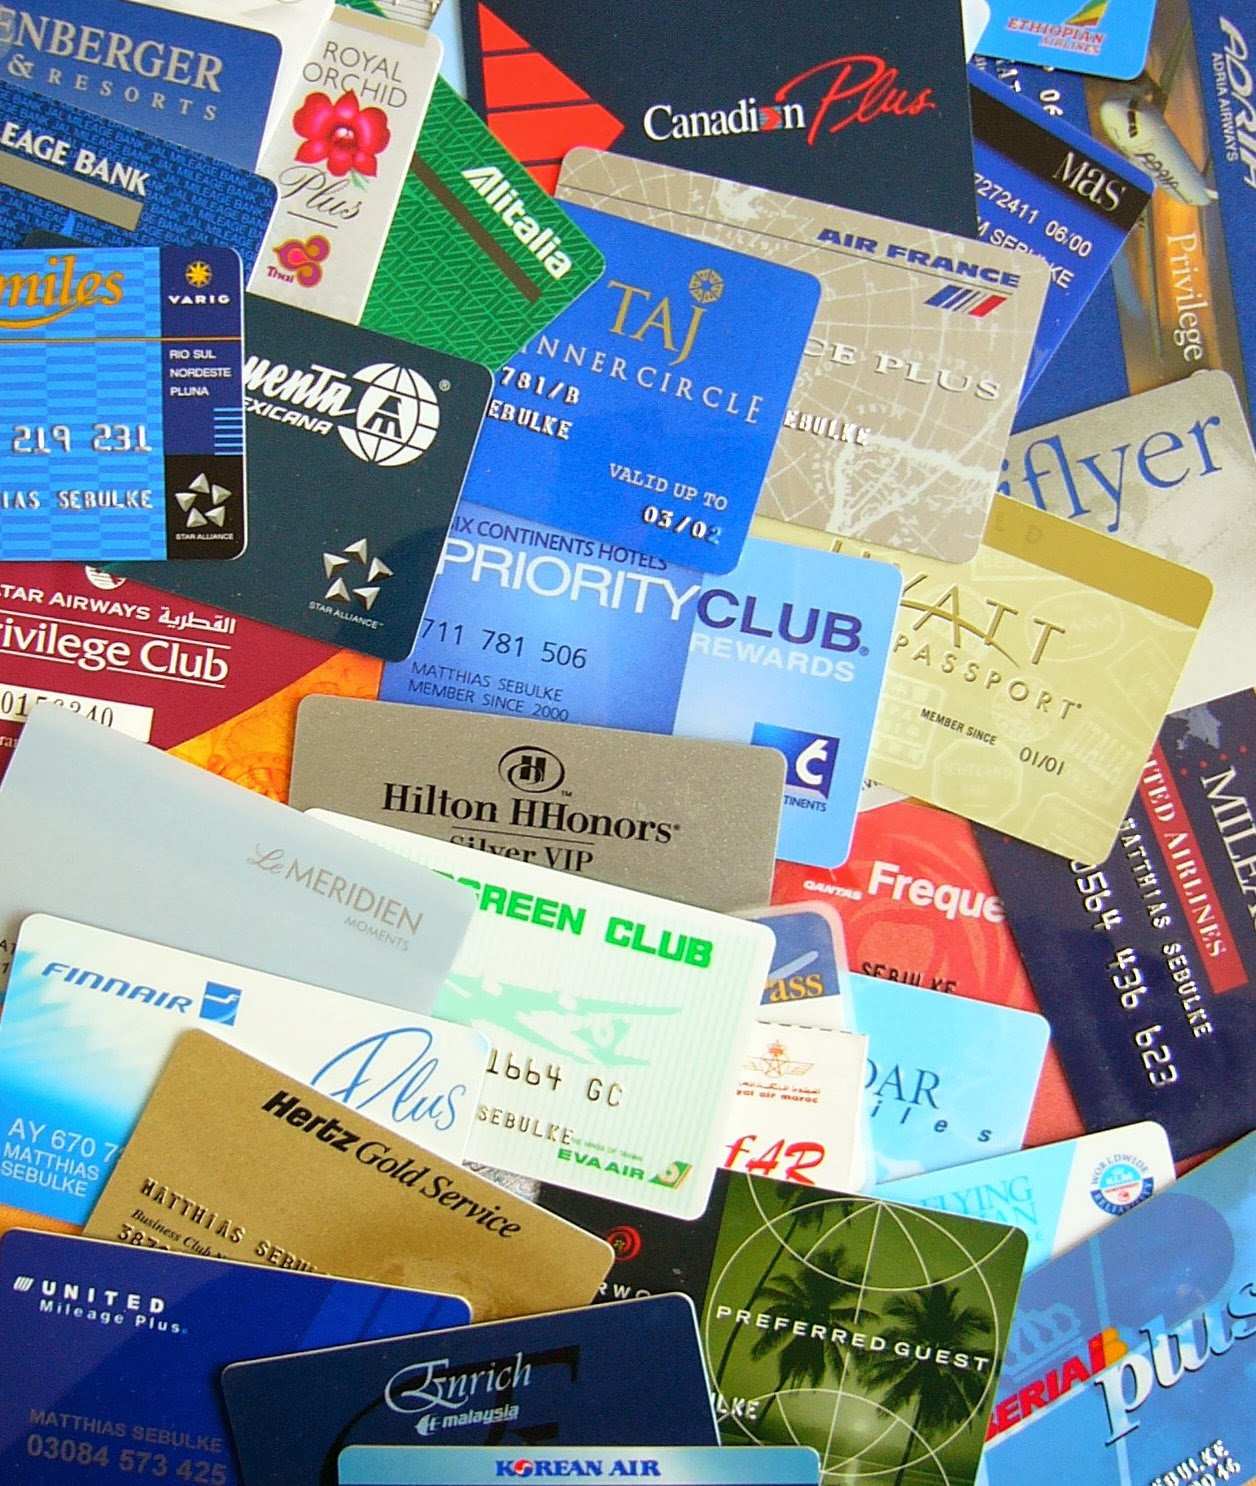 Credit card rewards programs offer incentives to customers